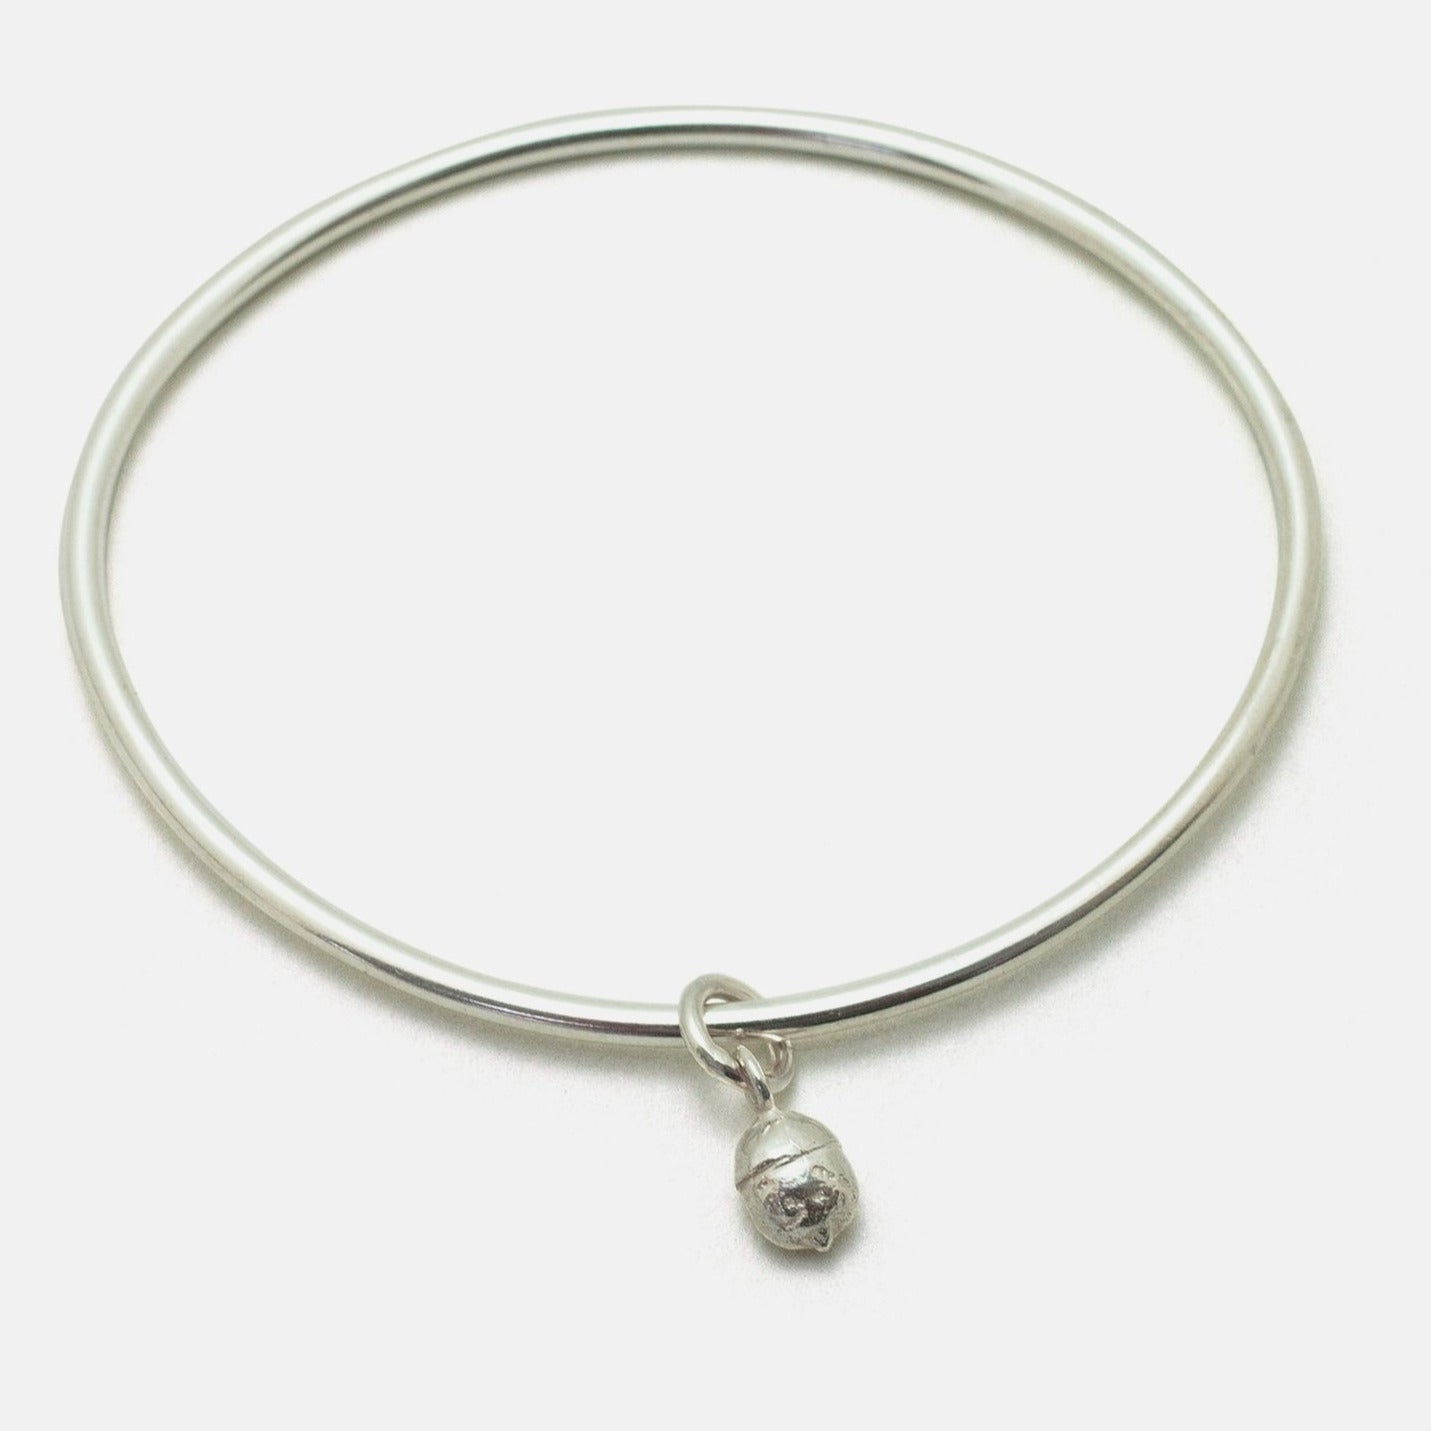 Yew berry charm Bangle